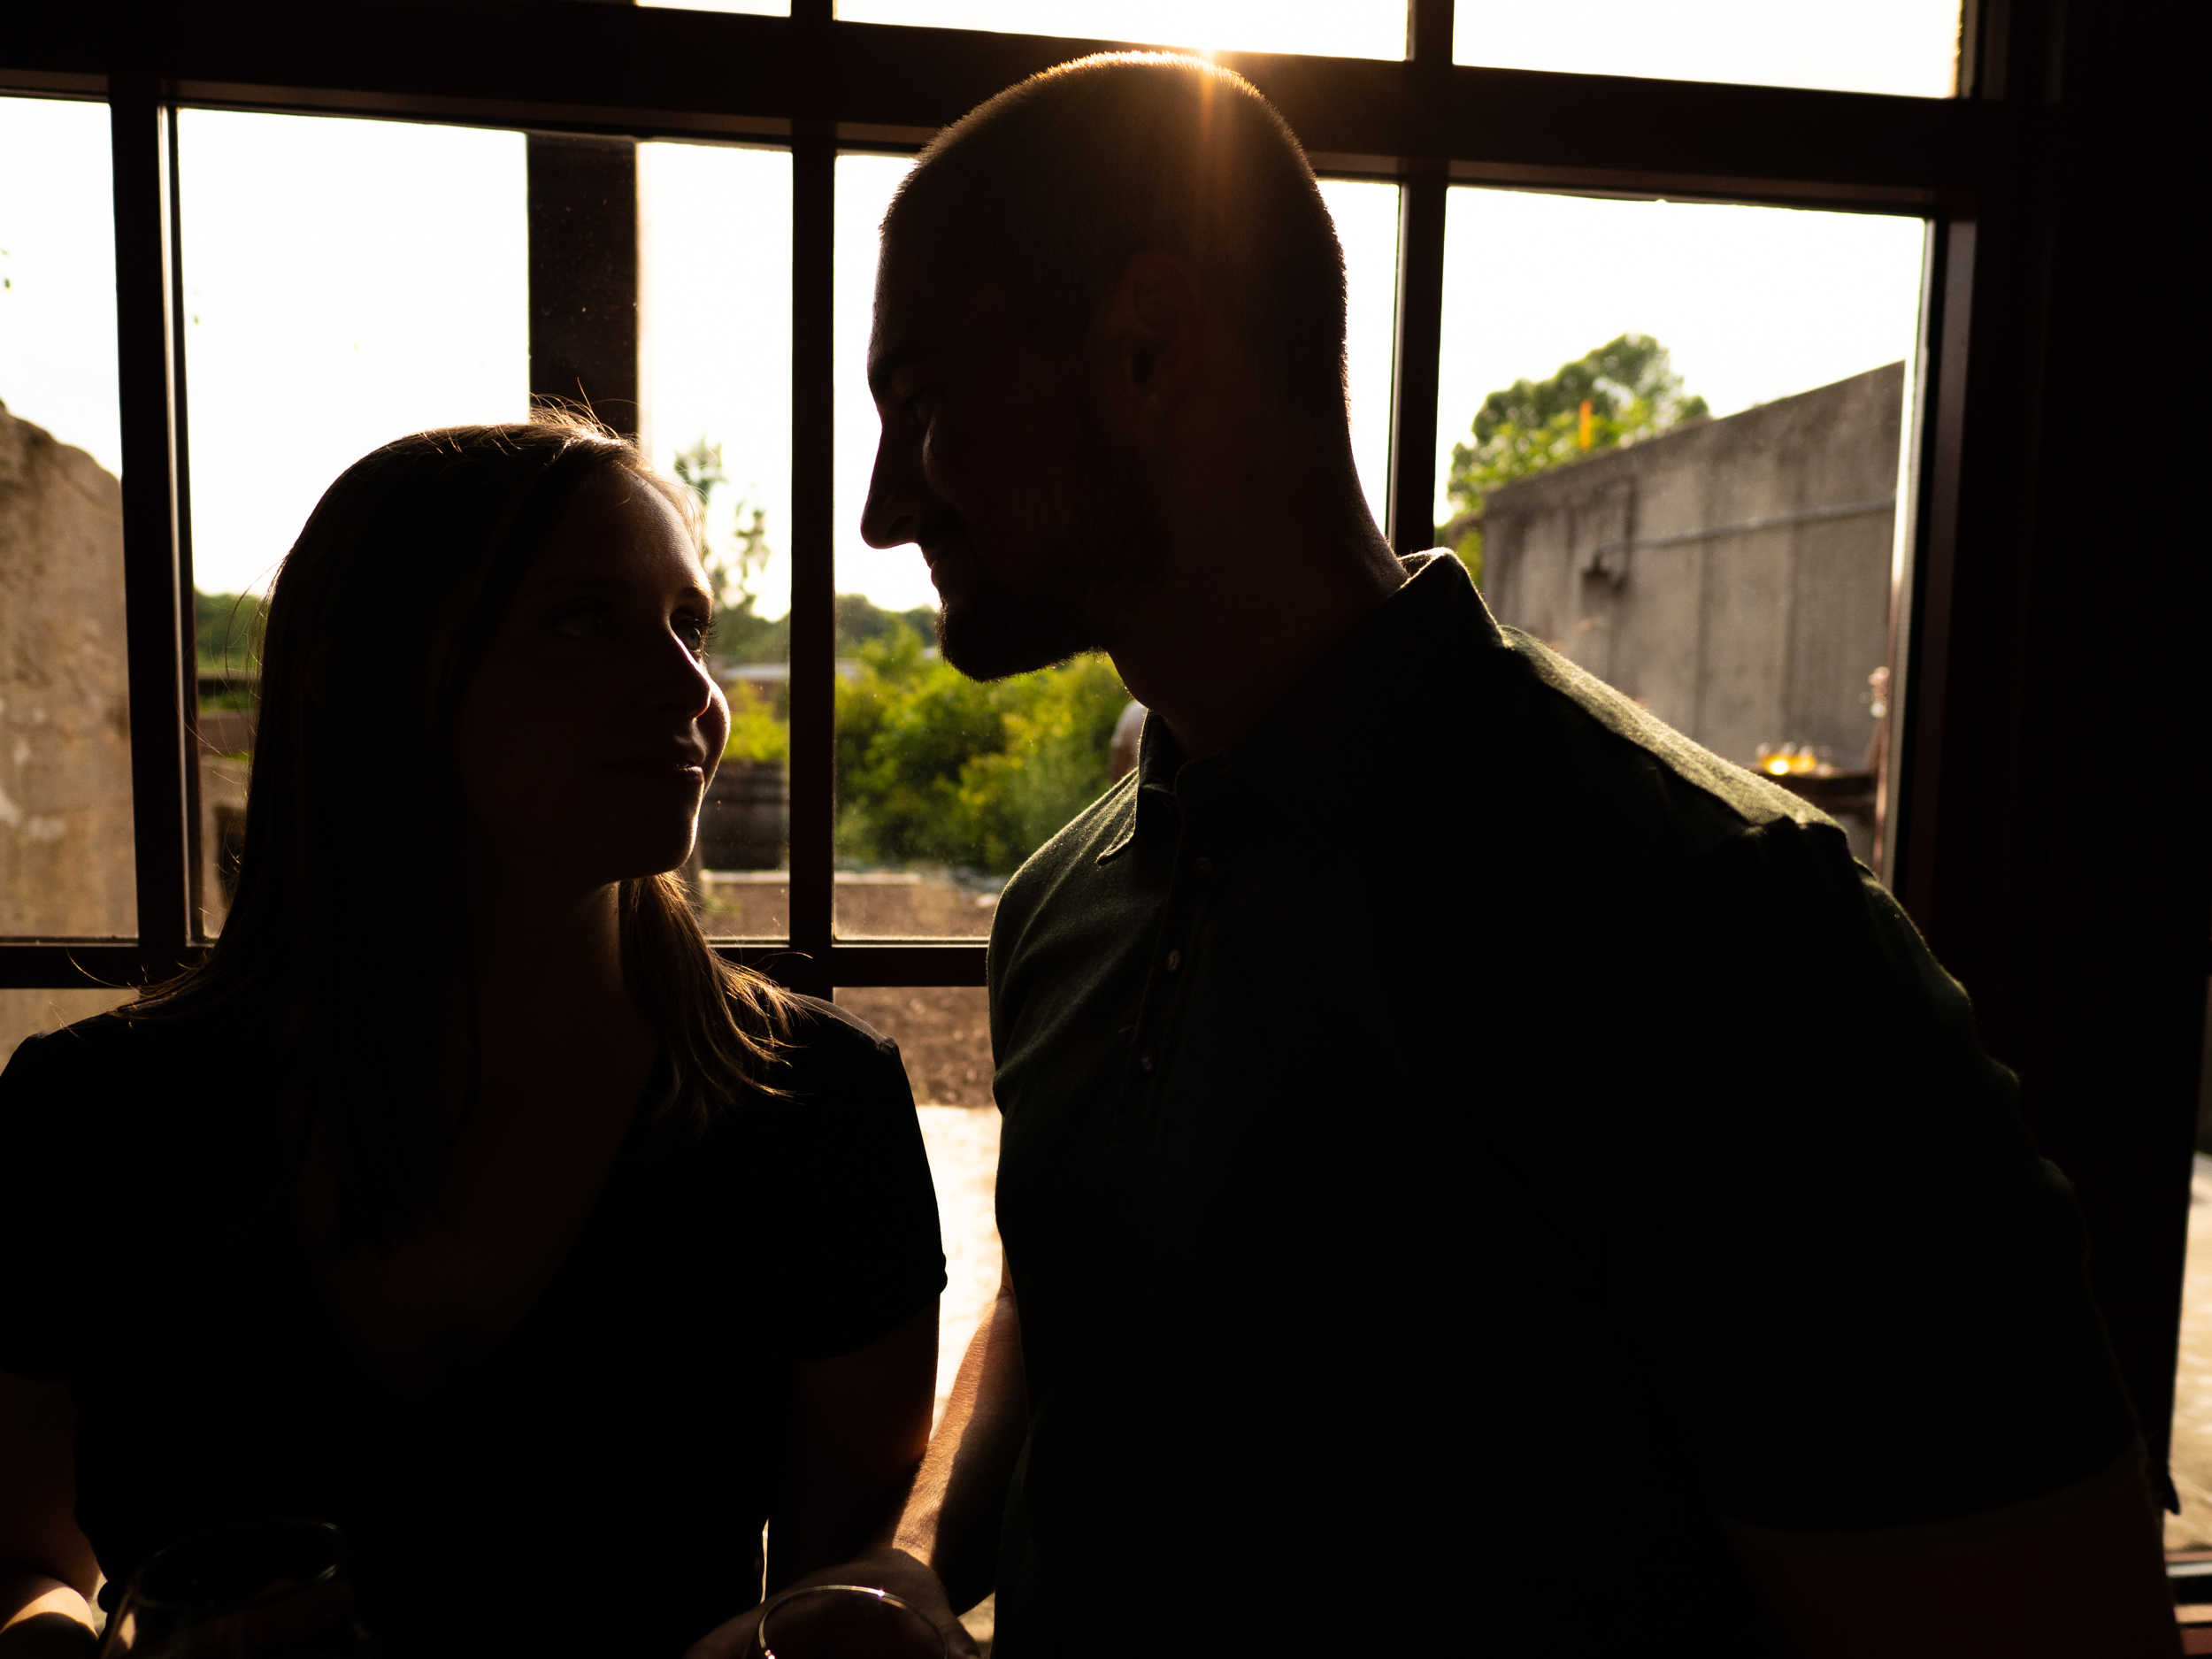 saxapahaw-brewery-river-chapel hill-carrboro-engagement-portraits-wedding-emily-brad-30394.jpg